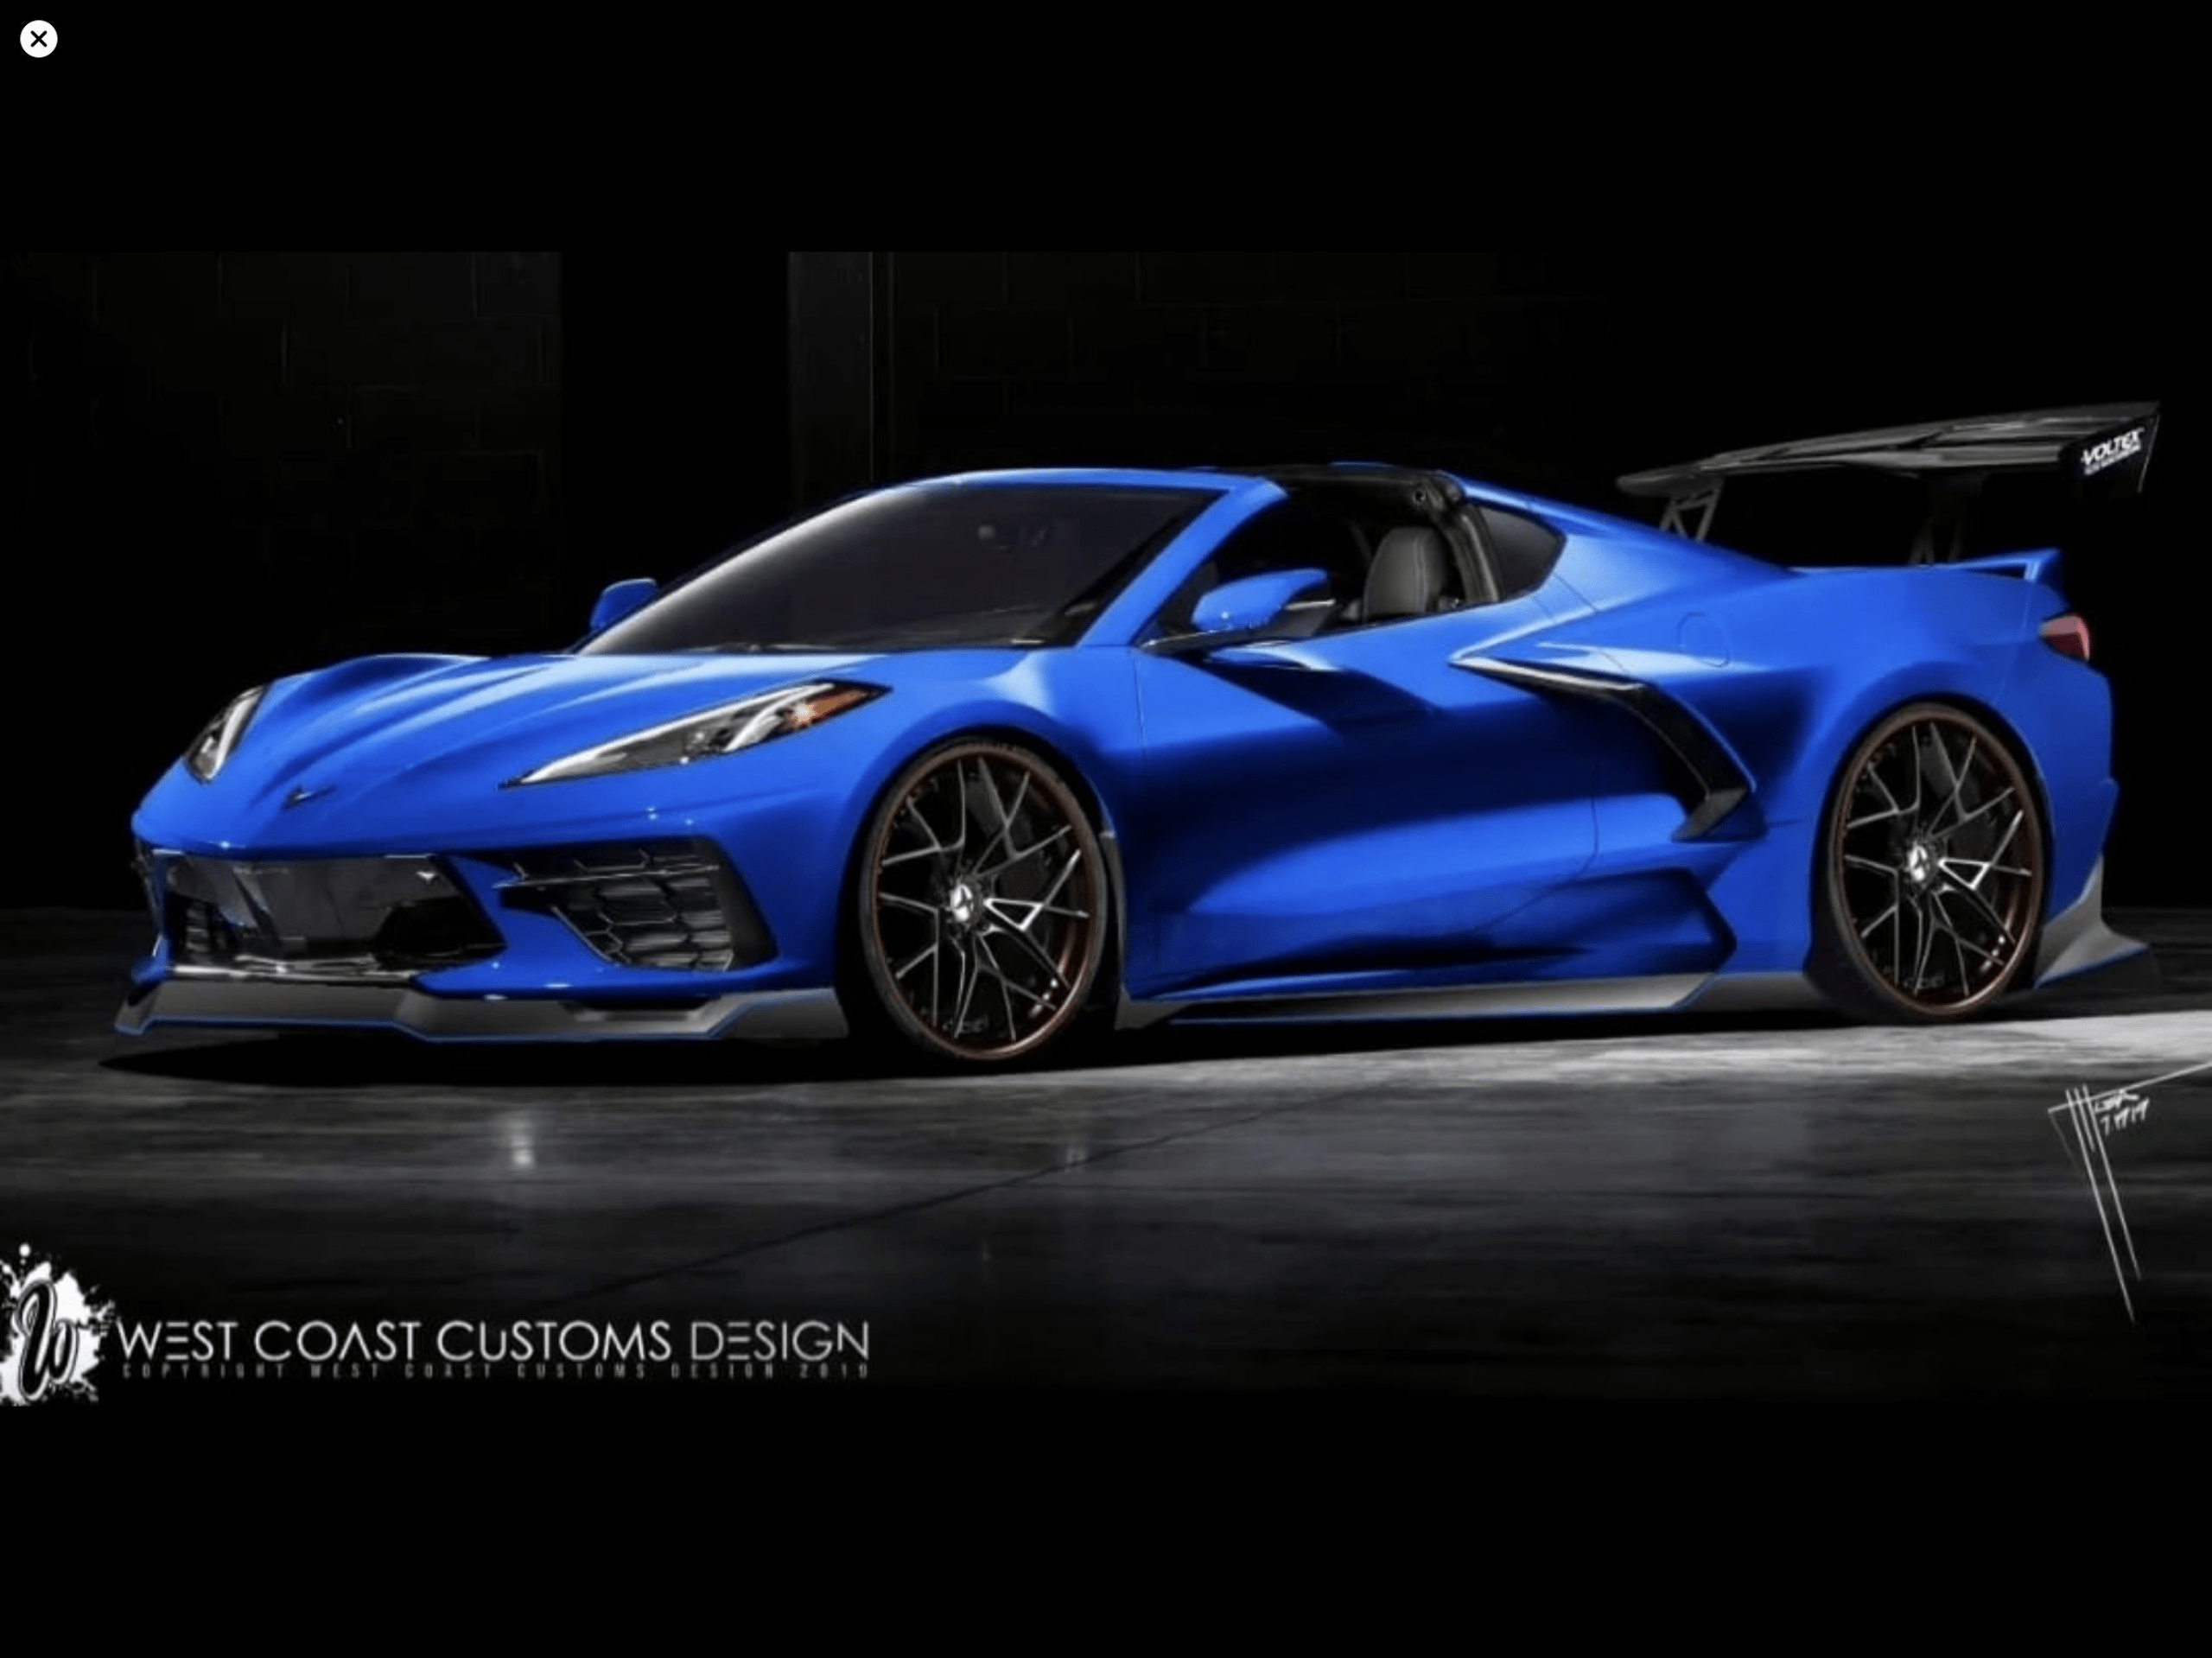 2020 Chevrolet Corvette Zora Zr1 Performance In 2020 Chevrolet